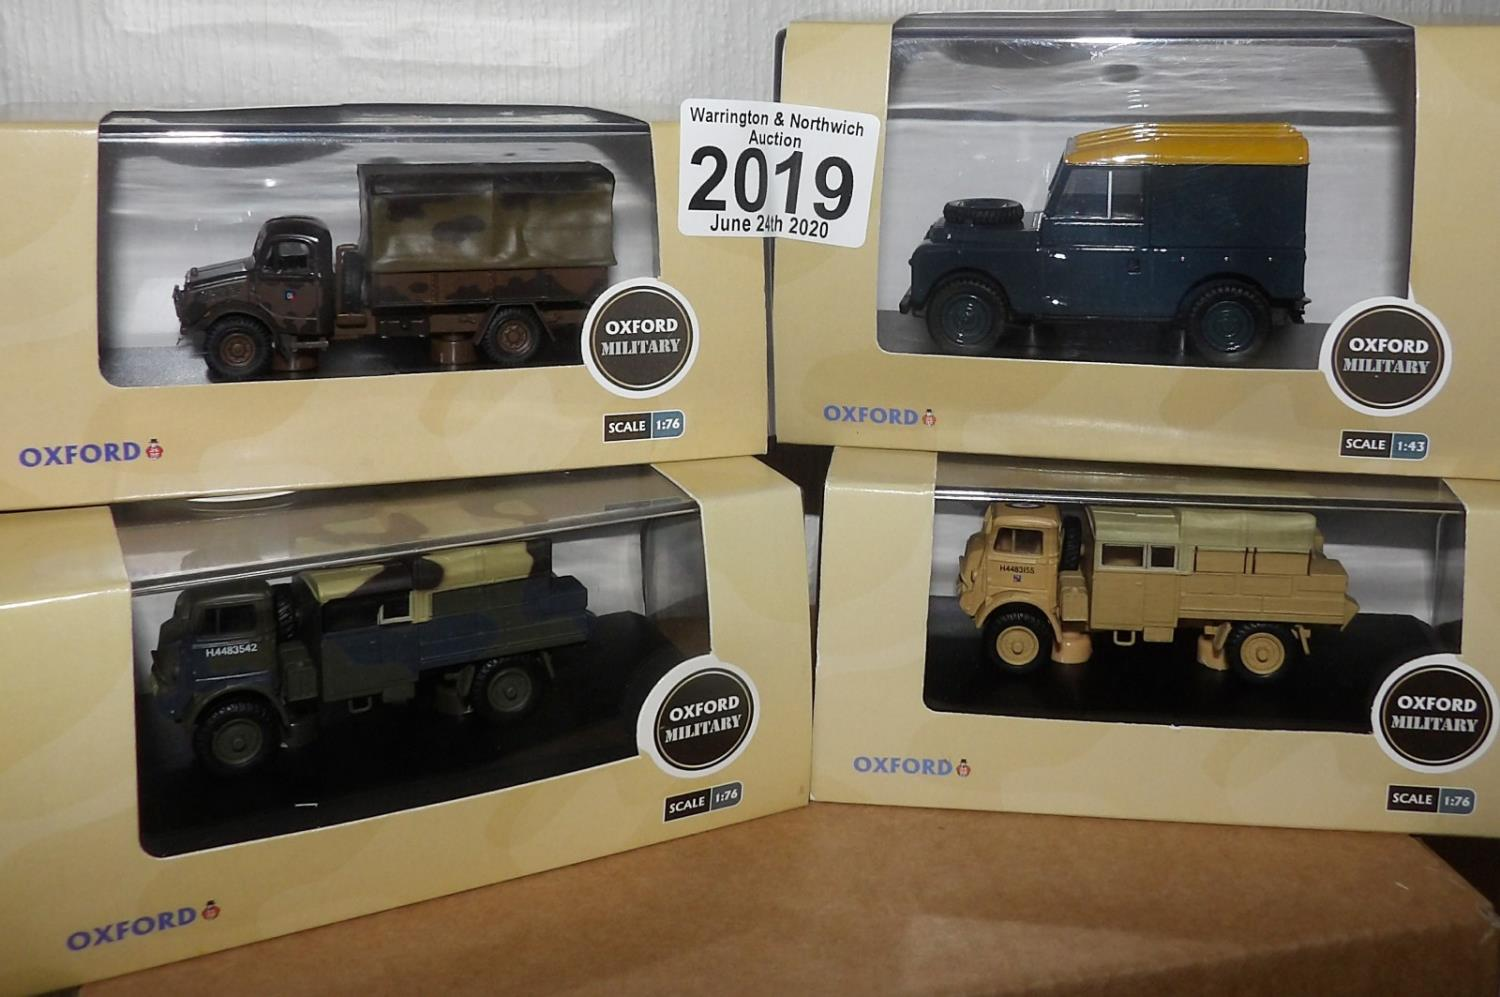 Lot 2019 - Oxford 1.76 Scale x 4 Mixed Military Vehicles. P&P Group 2 (£18+VAT for the first lot and £2+VAT for